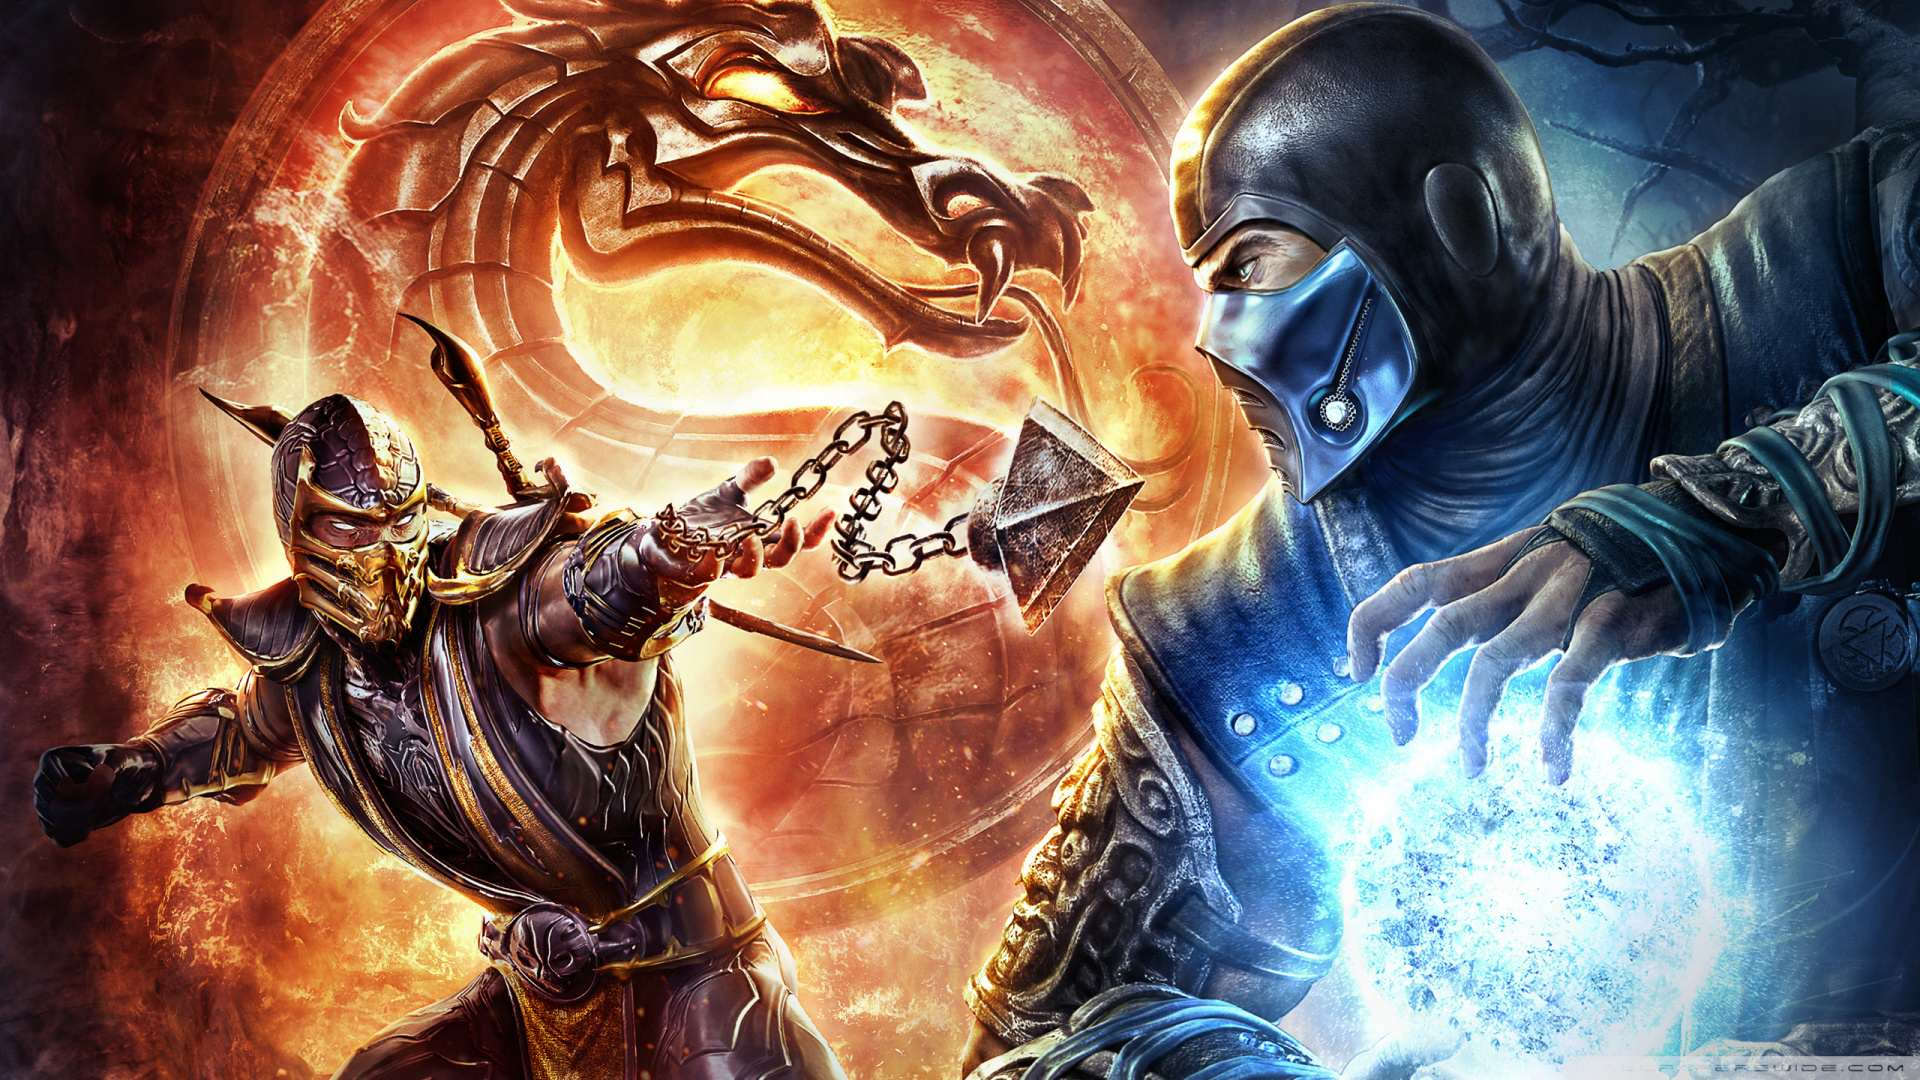 da7sgggqfgk1zrqtolss New Mortal Kombat Movie Still In The Works